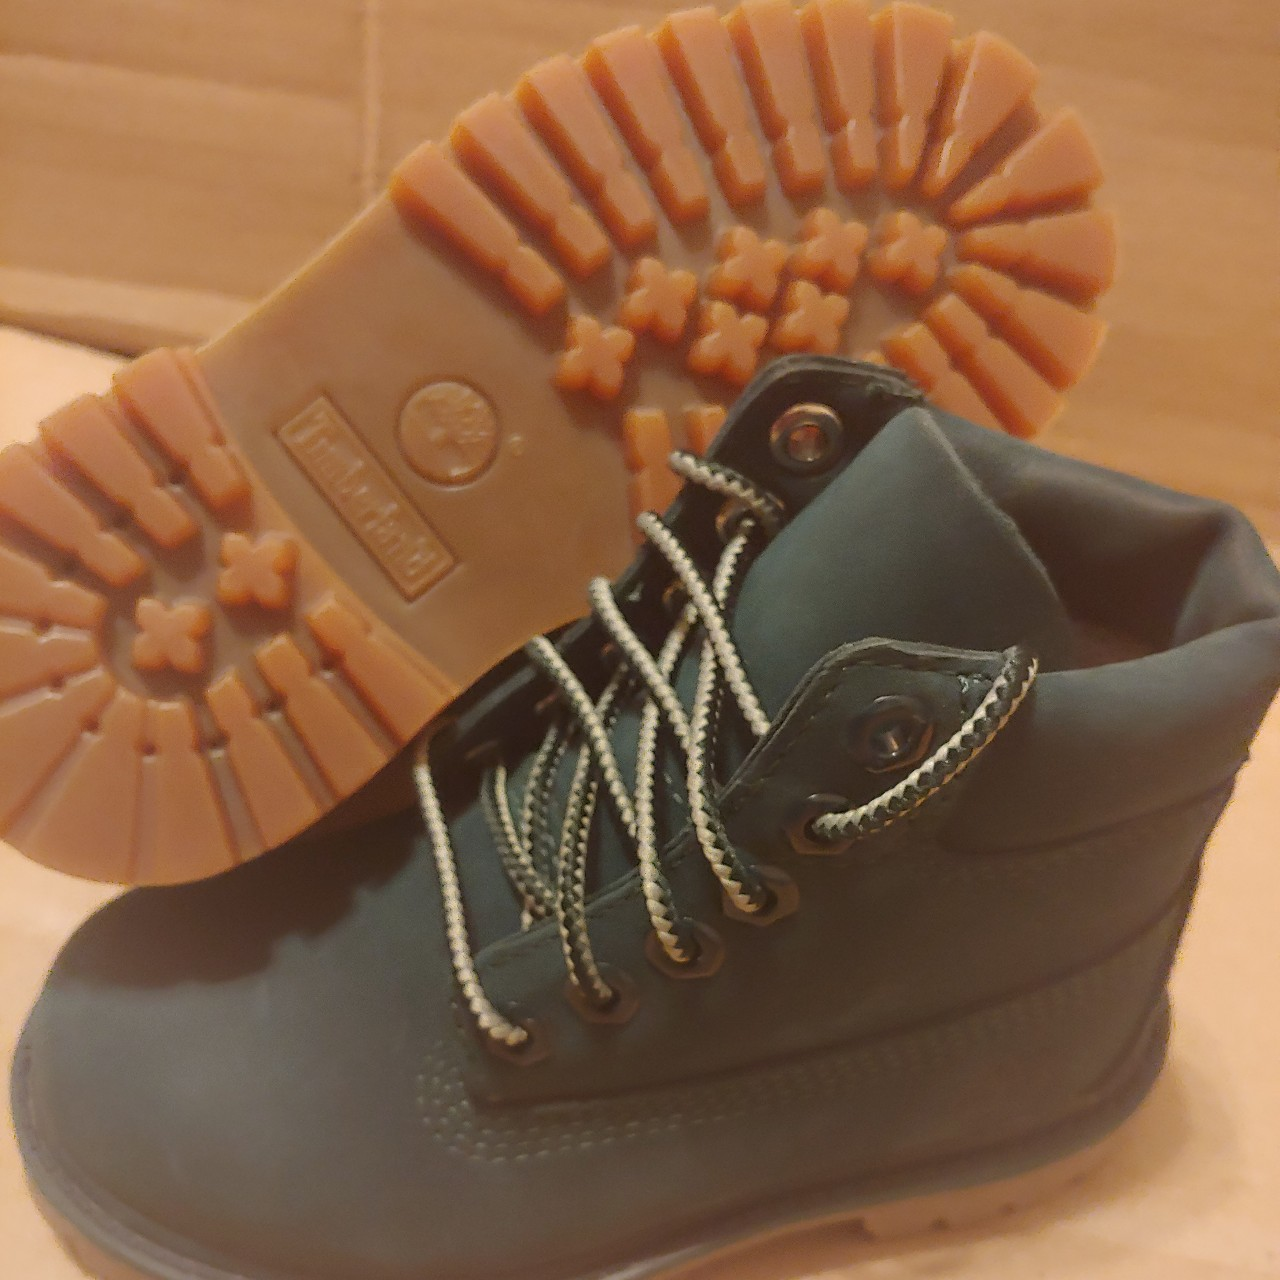 Hunter Green Toddler Timberland Boots Size 9c New Depop